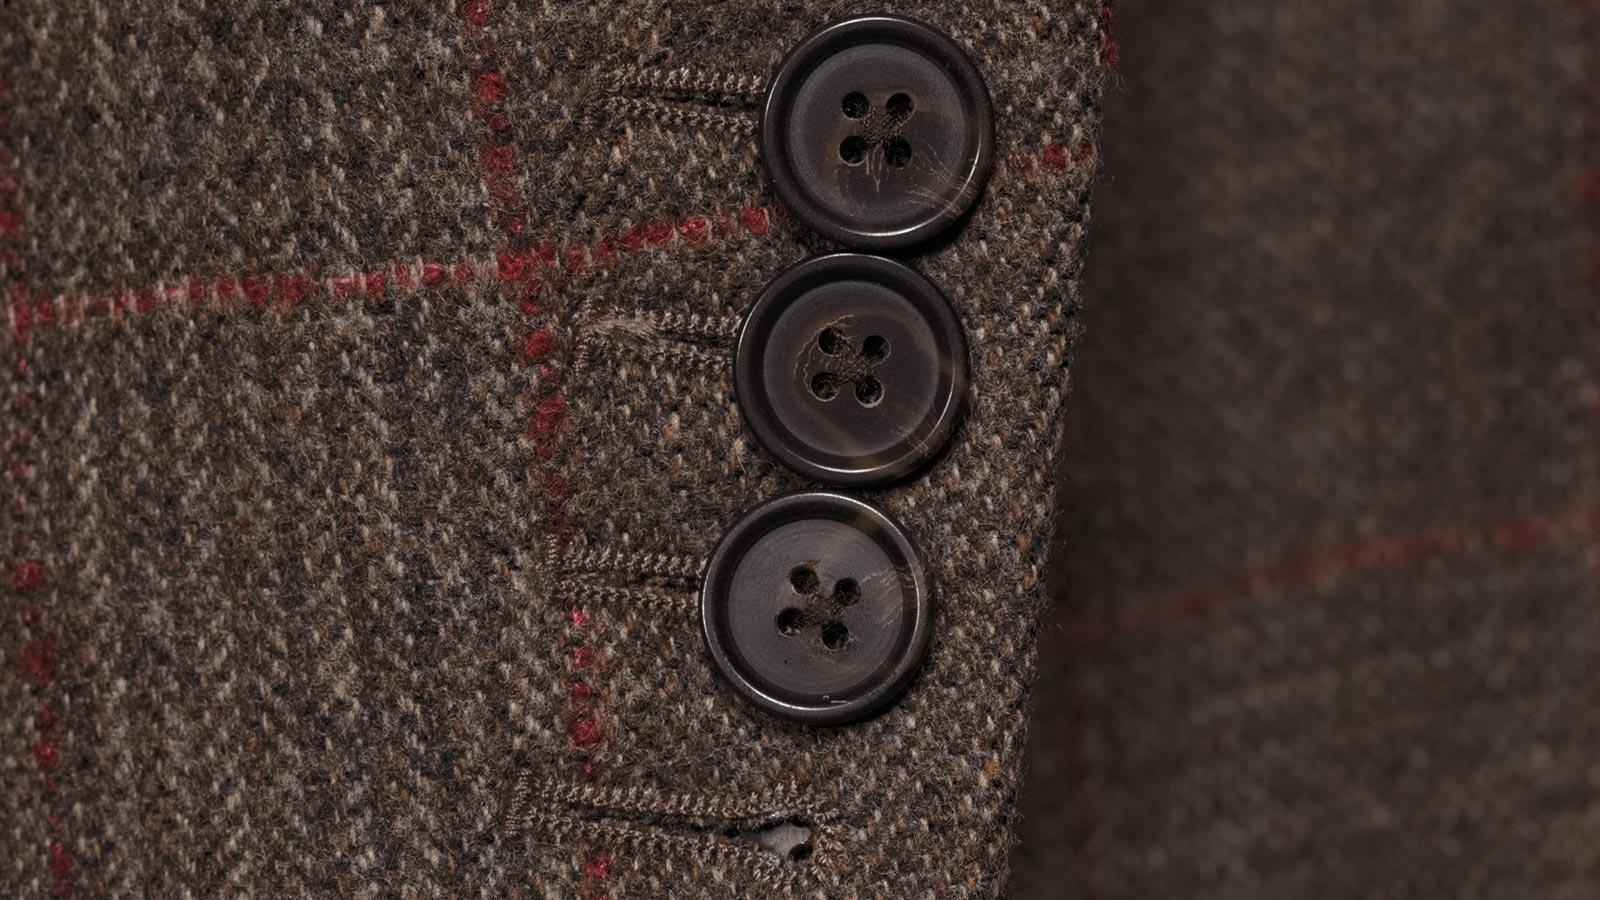 Brown Plaid with Red Overcheck Wool & Cashmere Suit - slider image 1